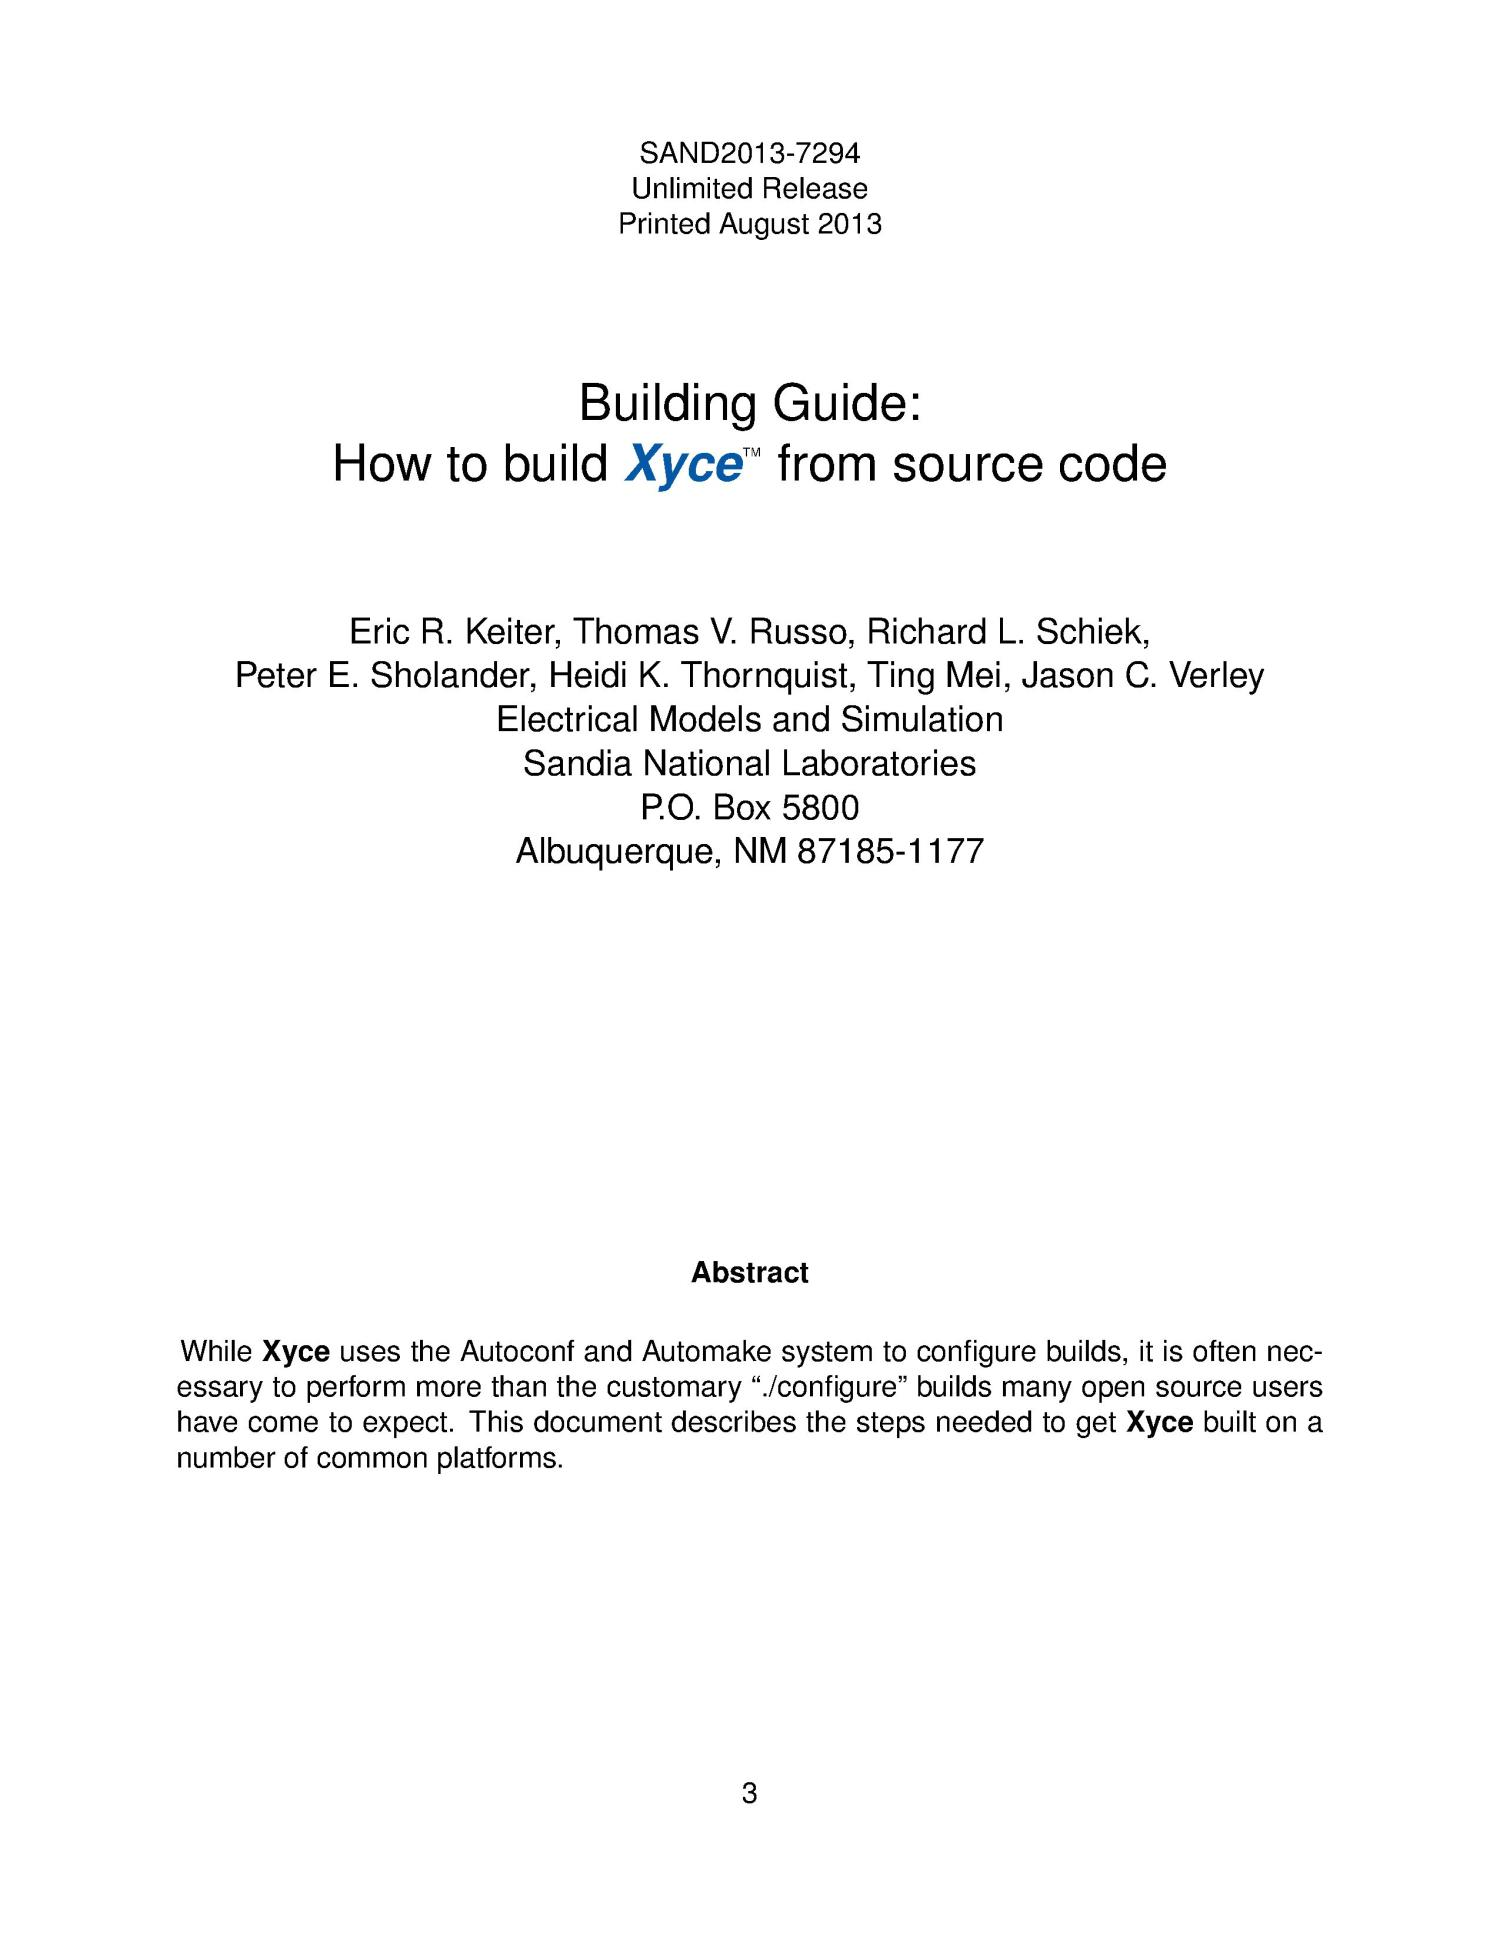 Building guide : how to build Xyce from source code.                                                                                                      [Sequence #]: 3 of 36